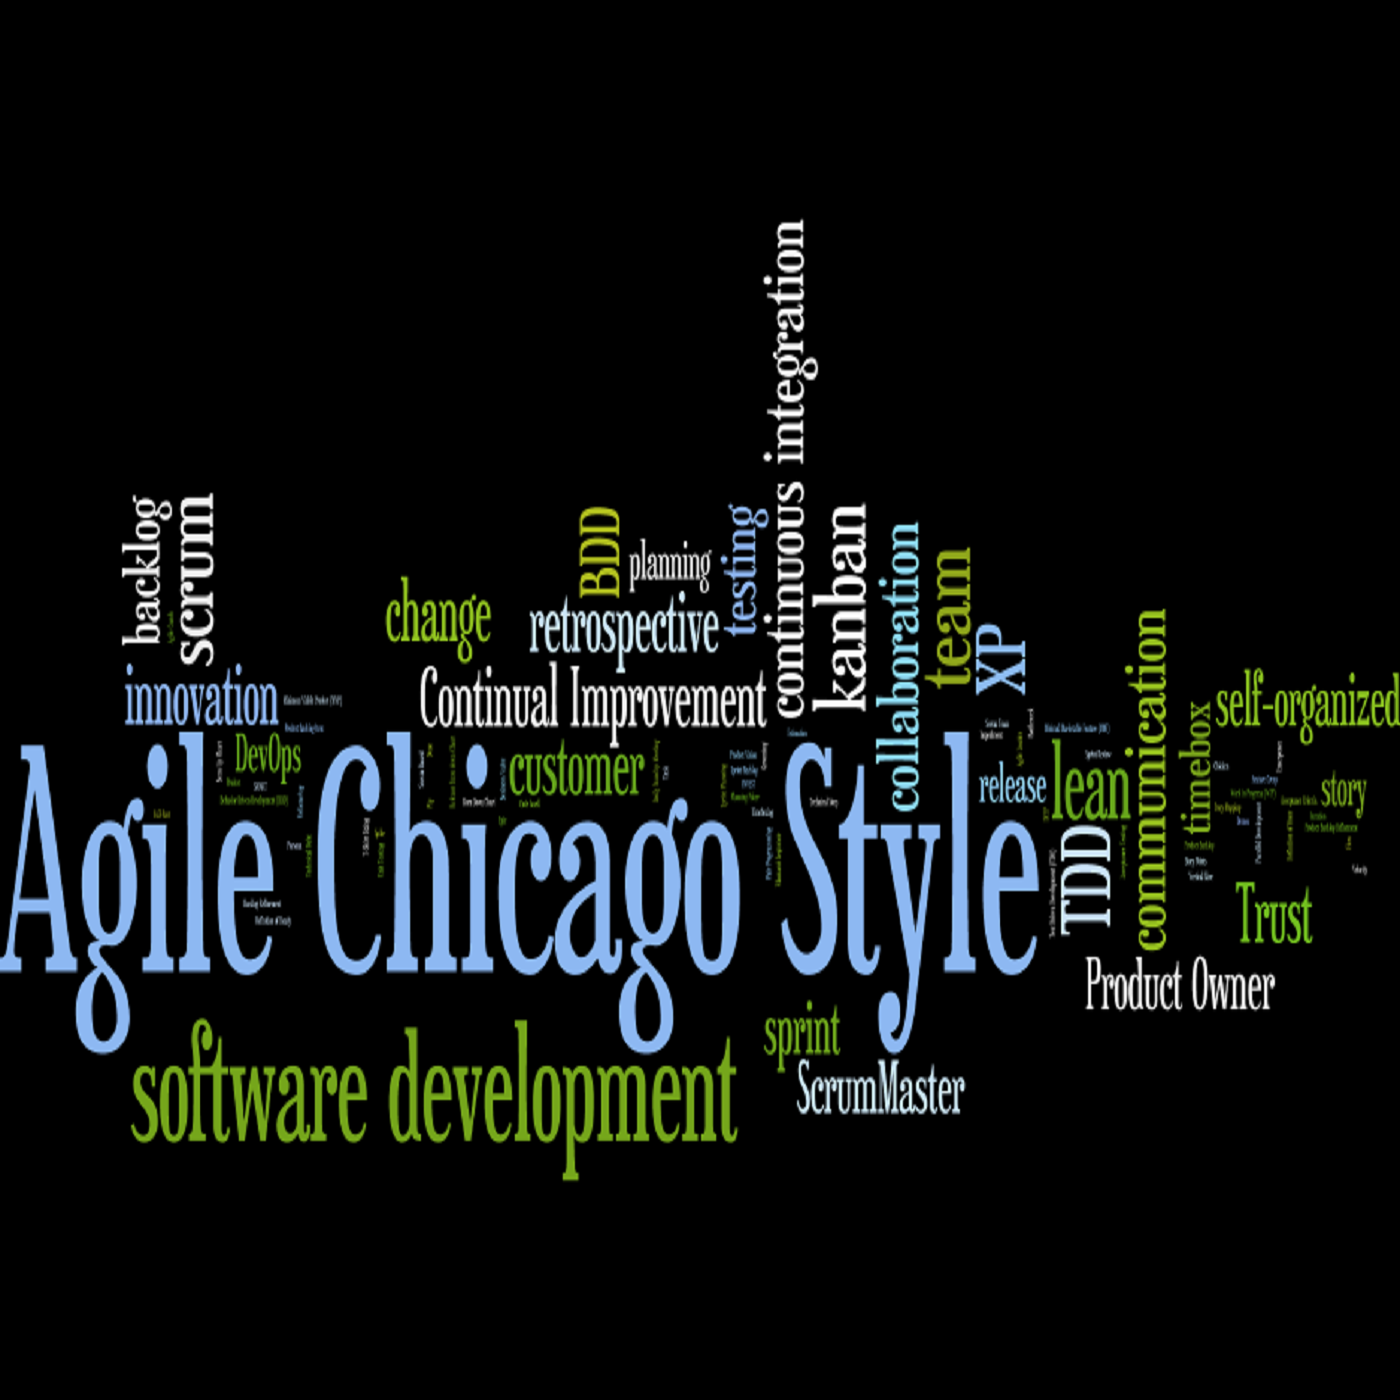 Agile Chicago Style